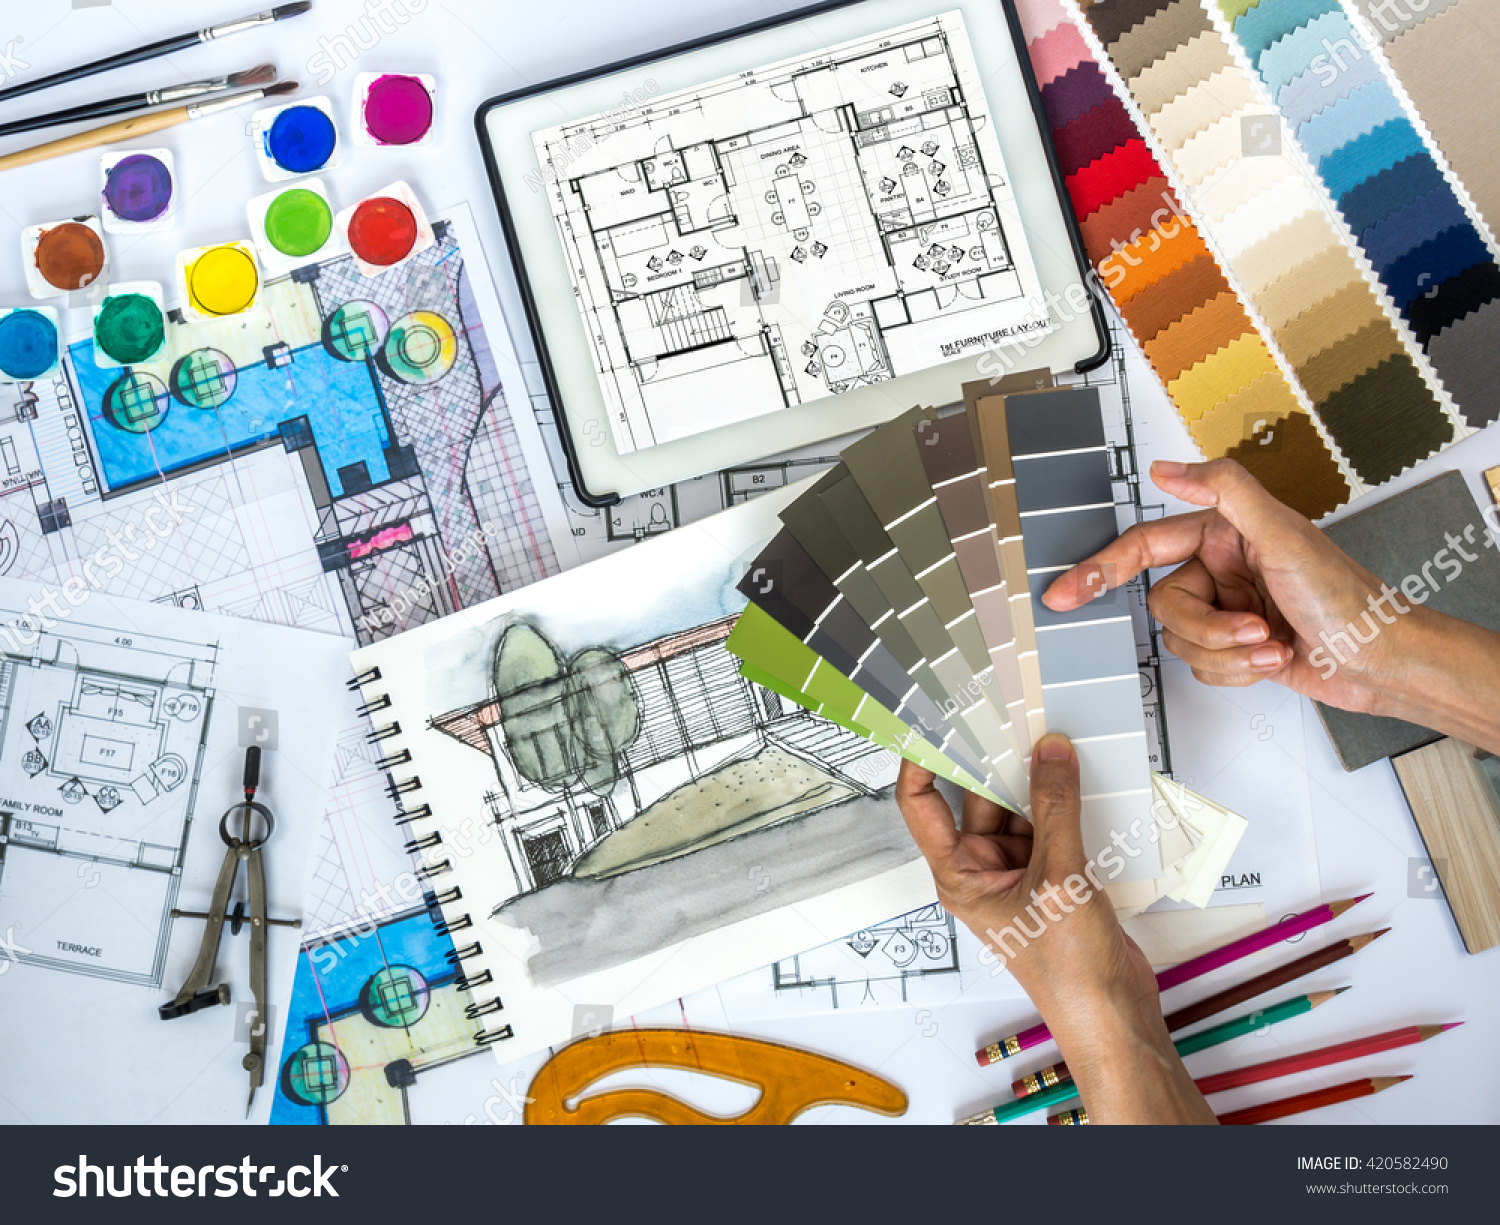 Top view of architect \u0026 interior designer working at worktable with color swatch tablet